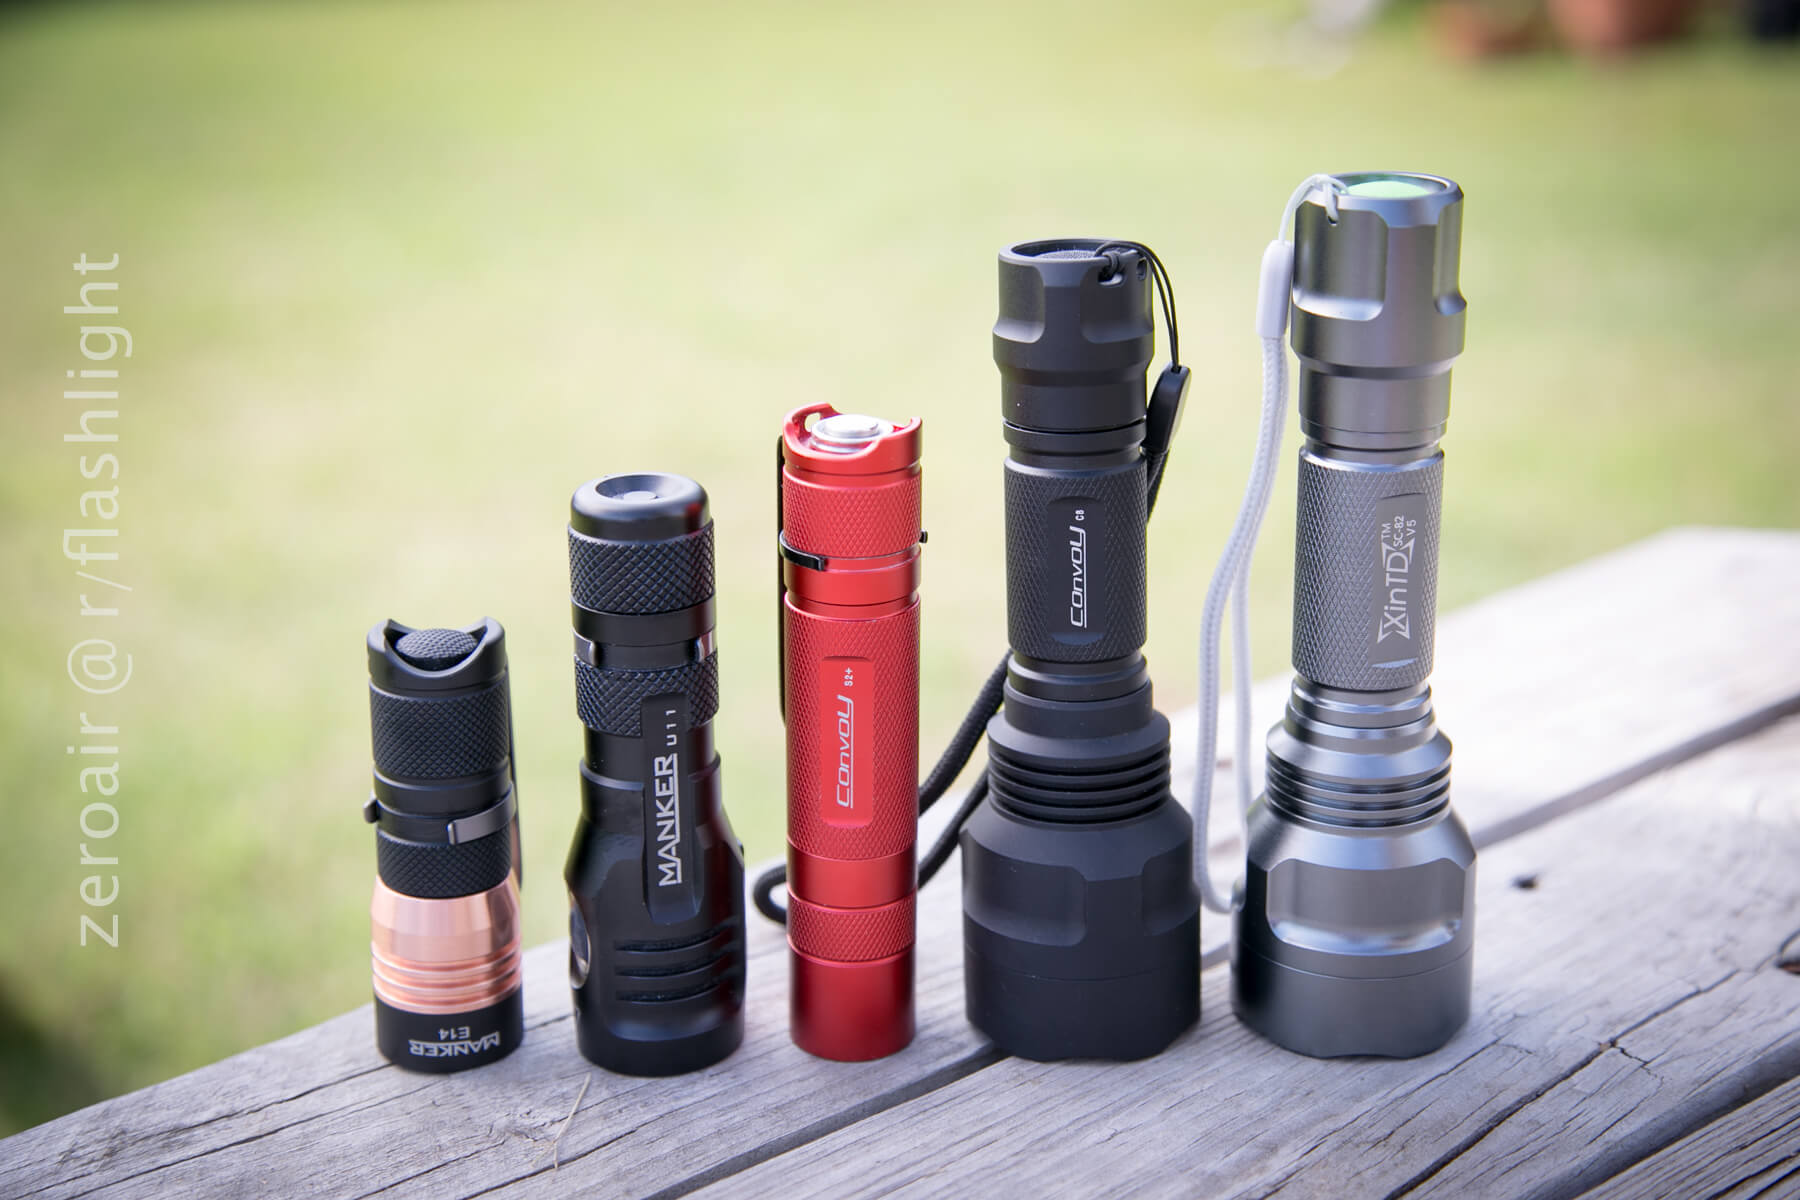 Convoy C8 XPL-HI [U6-3A] Flashlight Review – ZeroAir Reviews